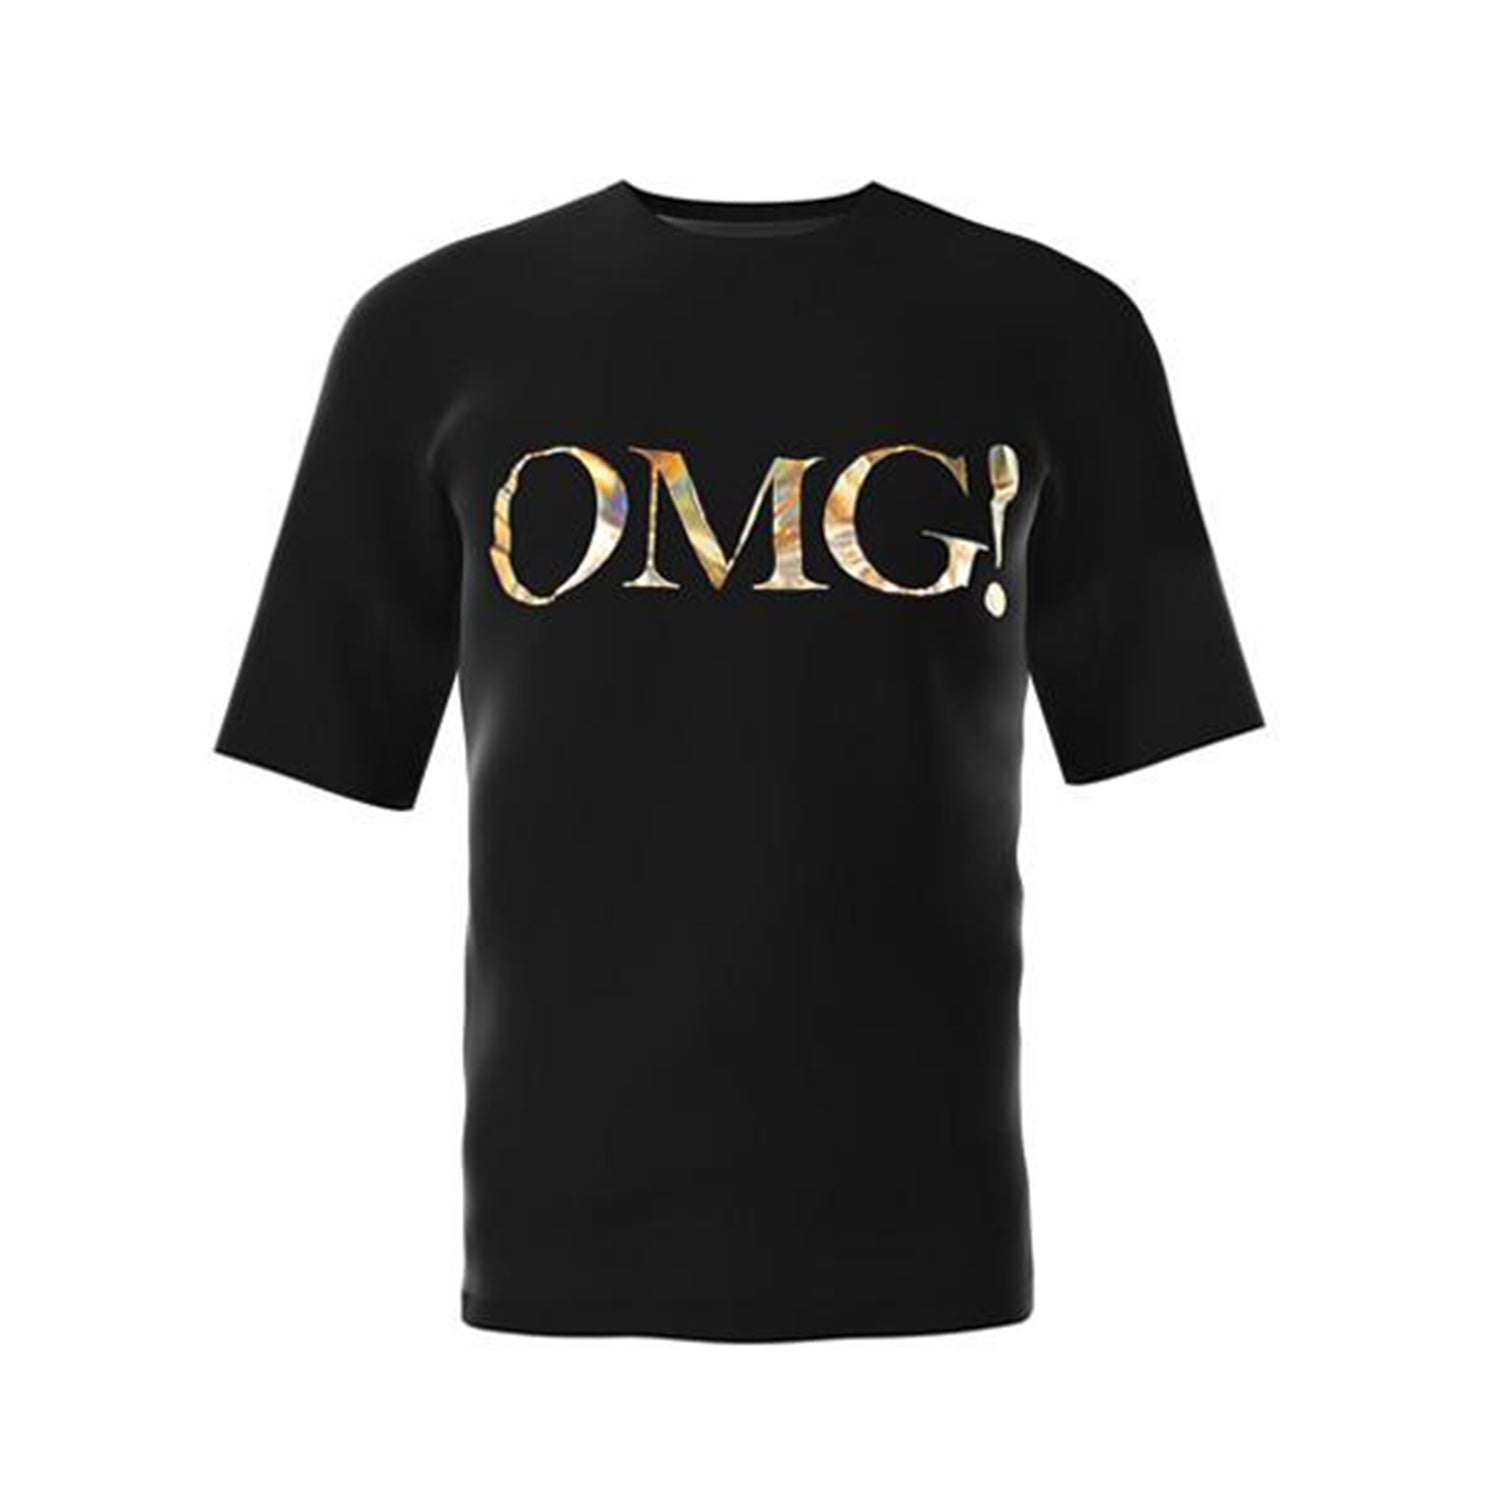 OMG! PLATINUM<br>LOGO SHIRT - DOUBLE DARE